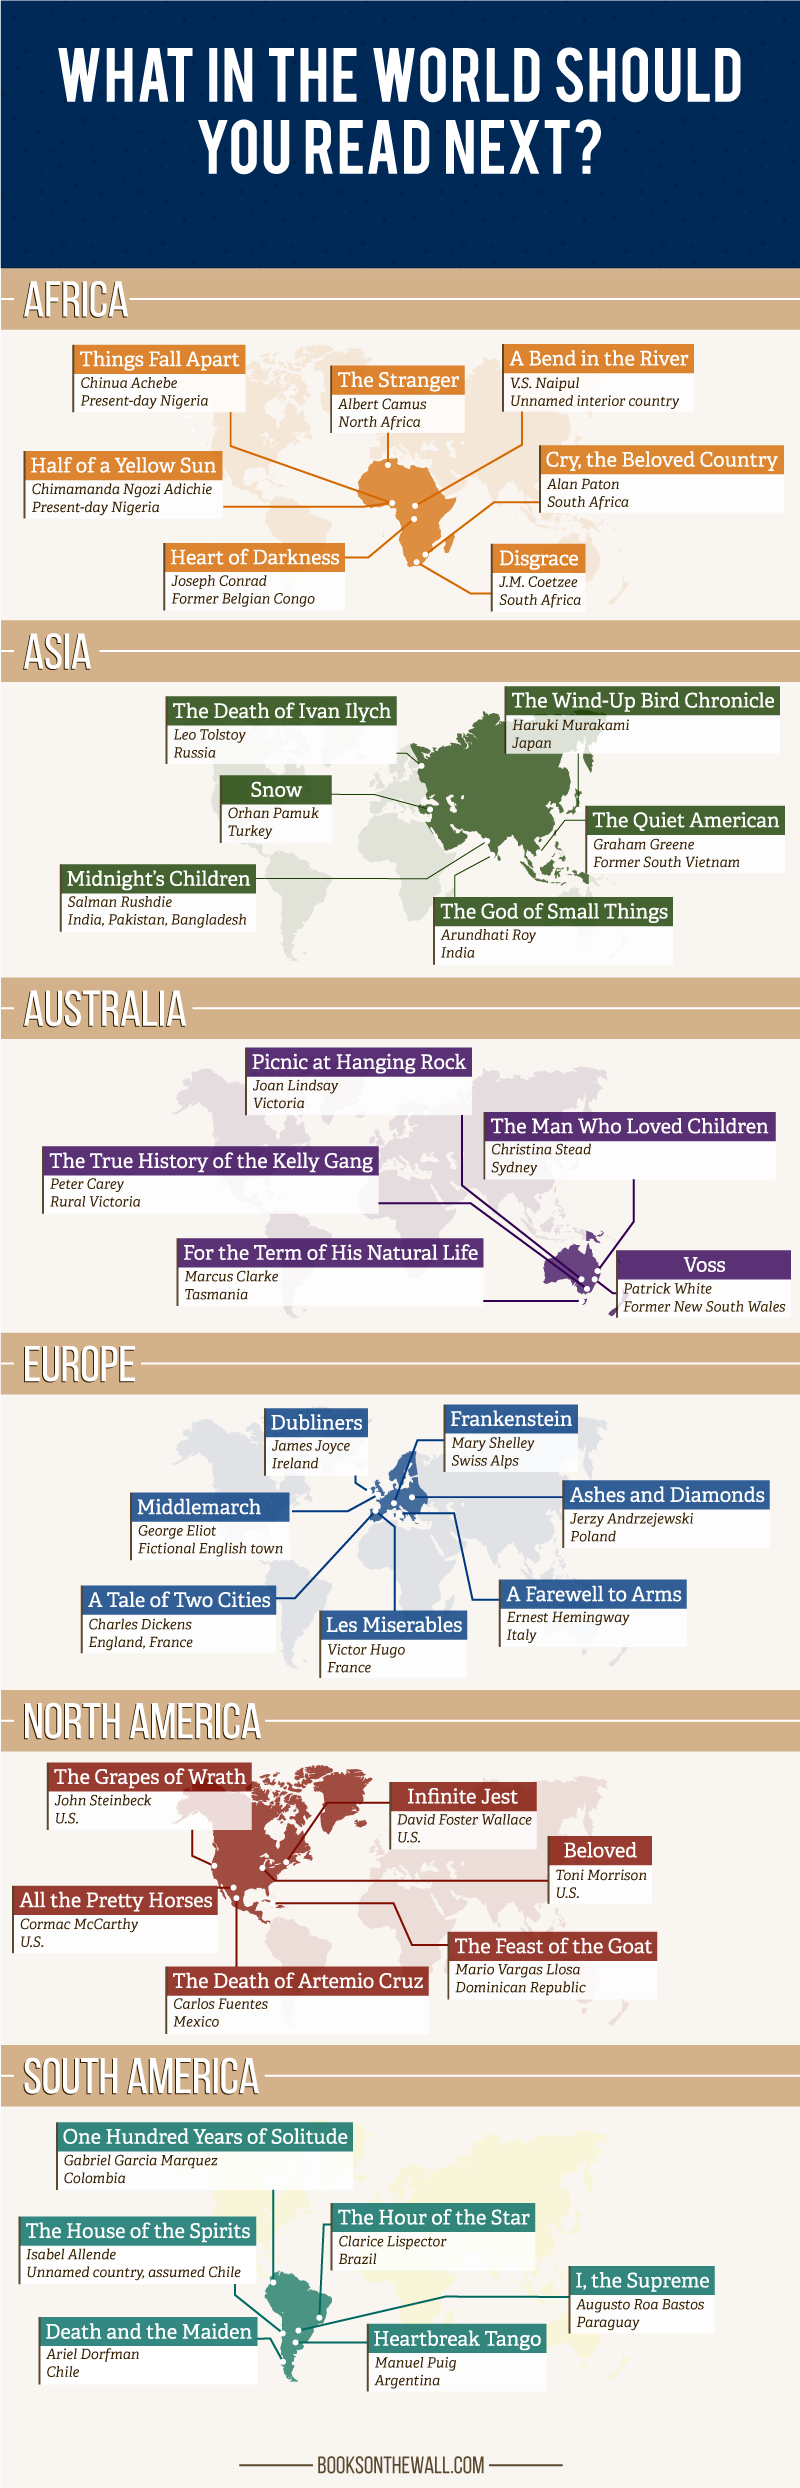 Around the World book infographic by Books on the Wall